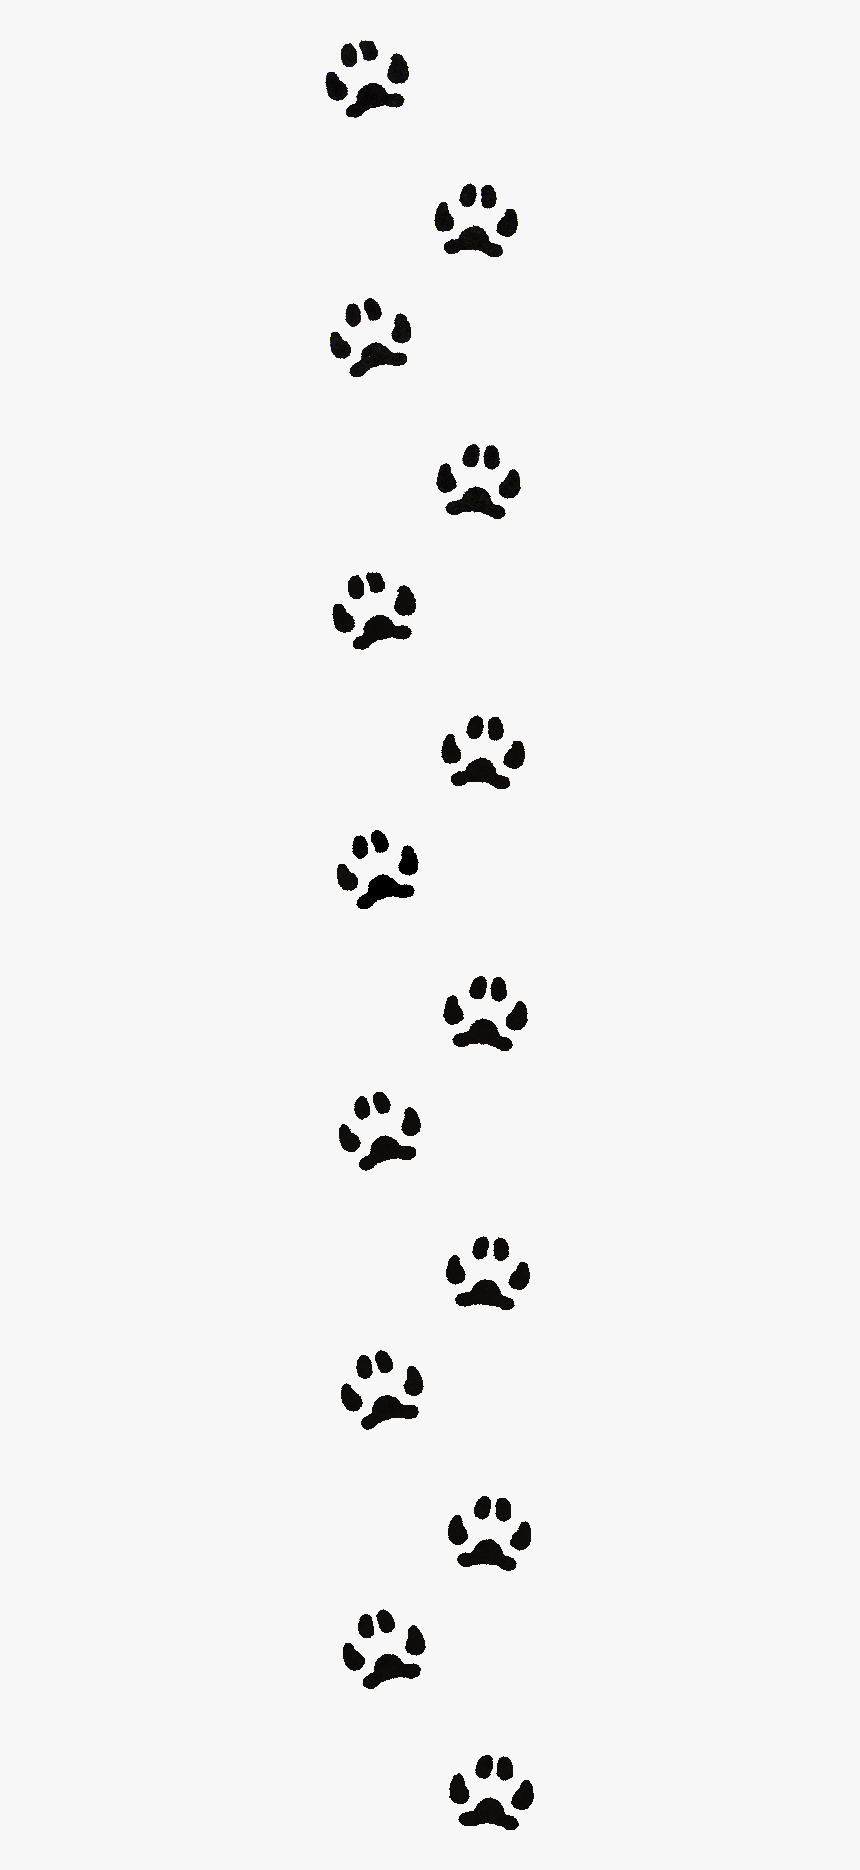 Paw Print Border Line Hd Png Download Transparent Png Image Pngitem Large collections of hd transparent paw print png images for free download. paw print border line hd png download